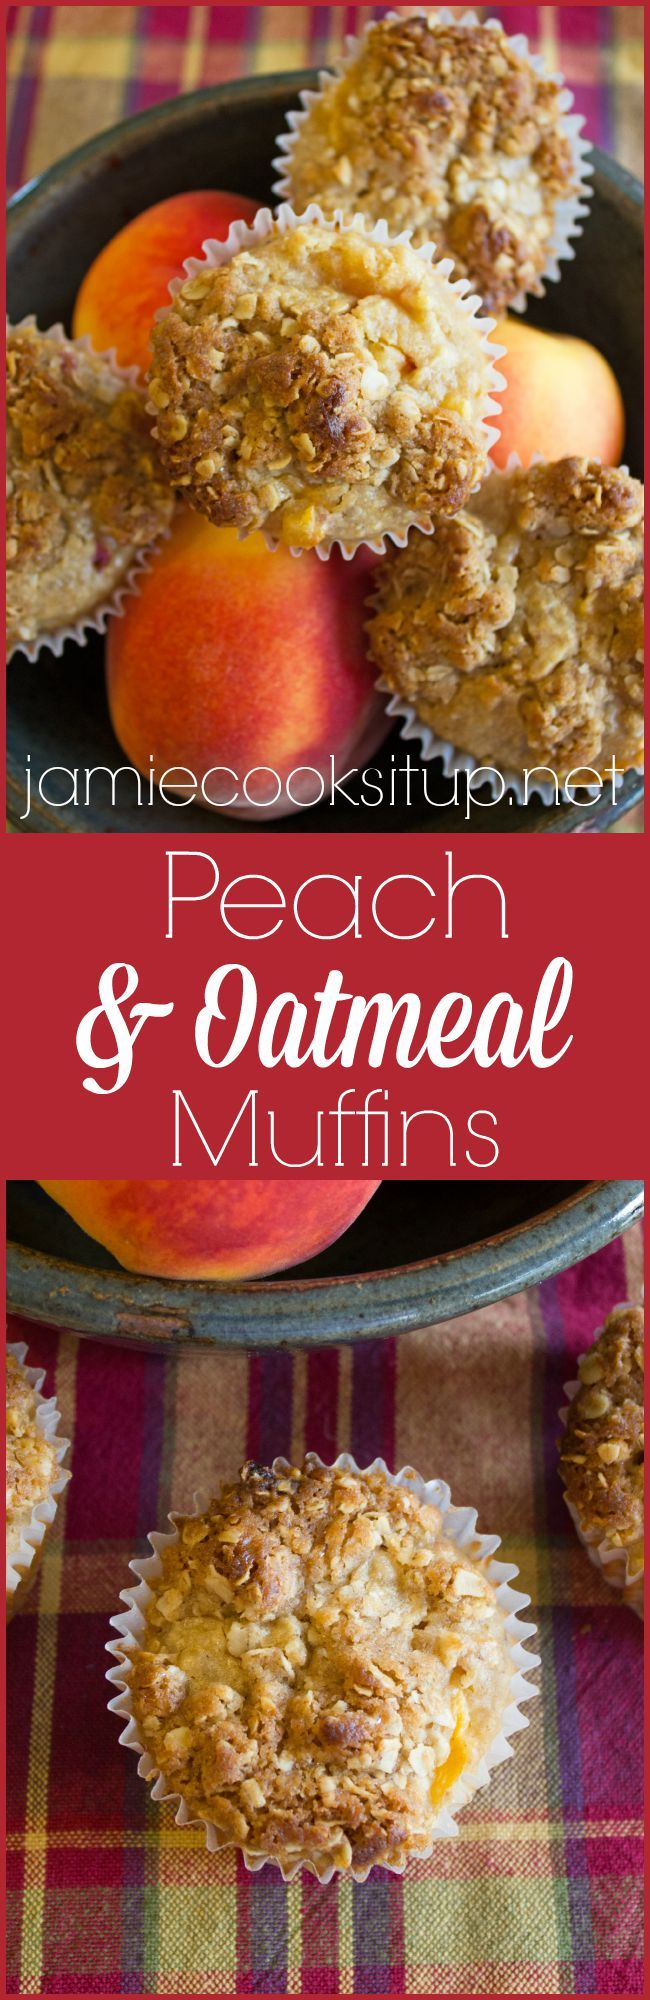 Peach and Oatmeal Muffins Jamie Cooks It Up!